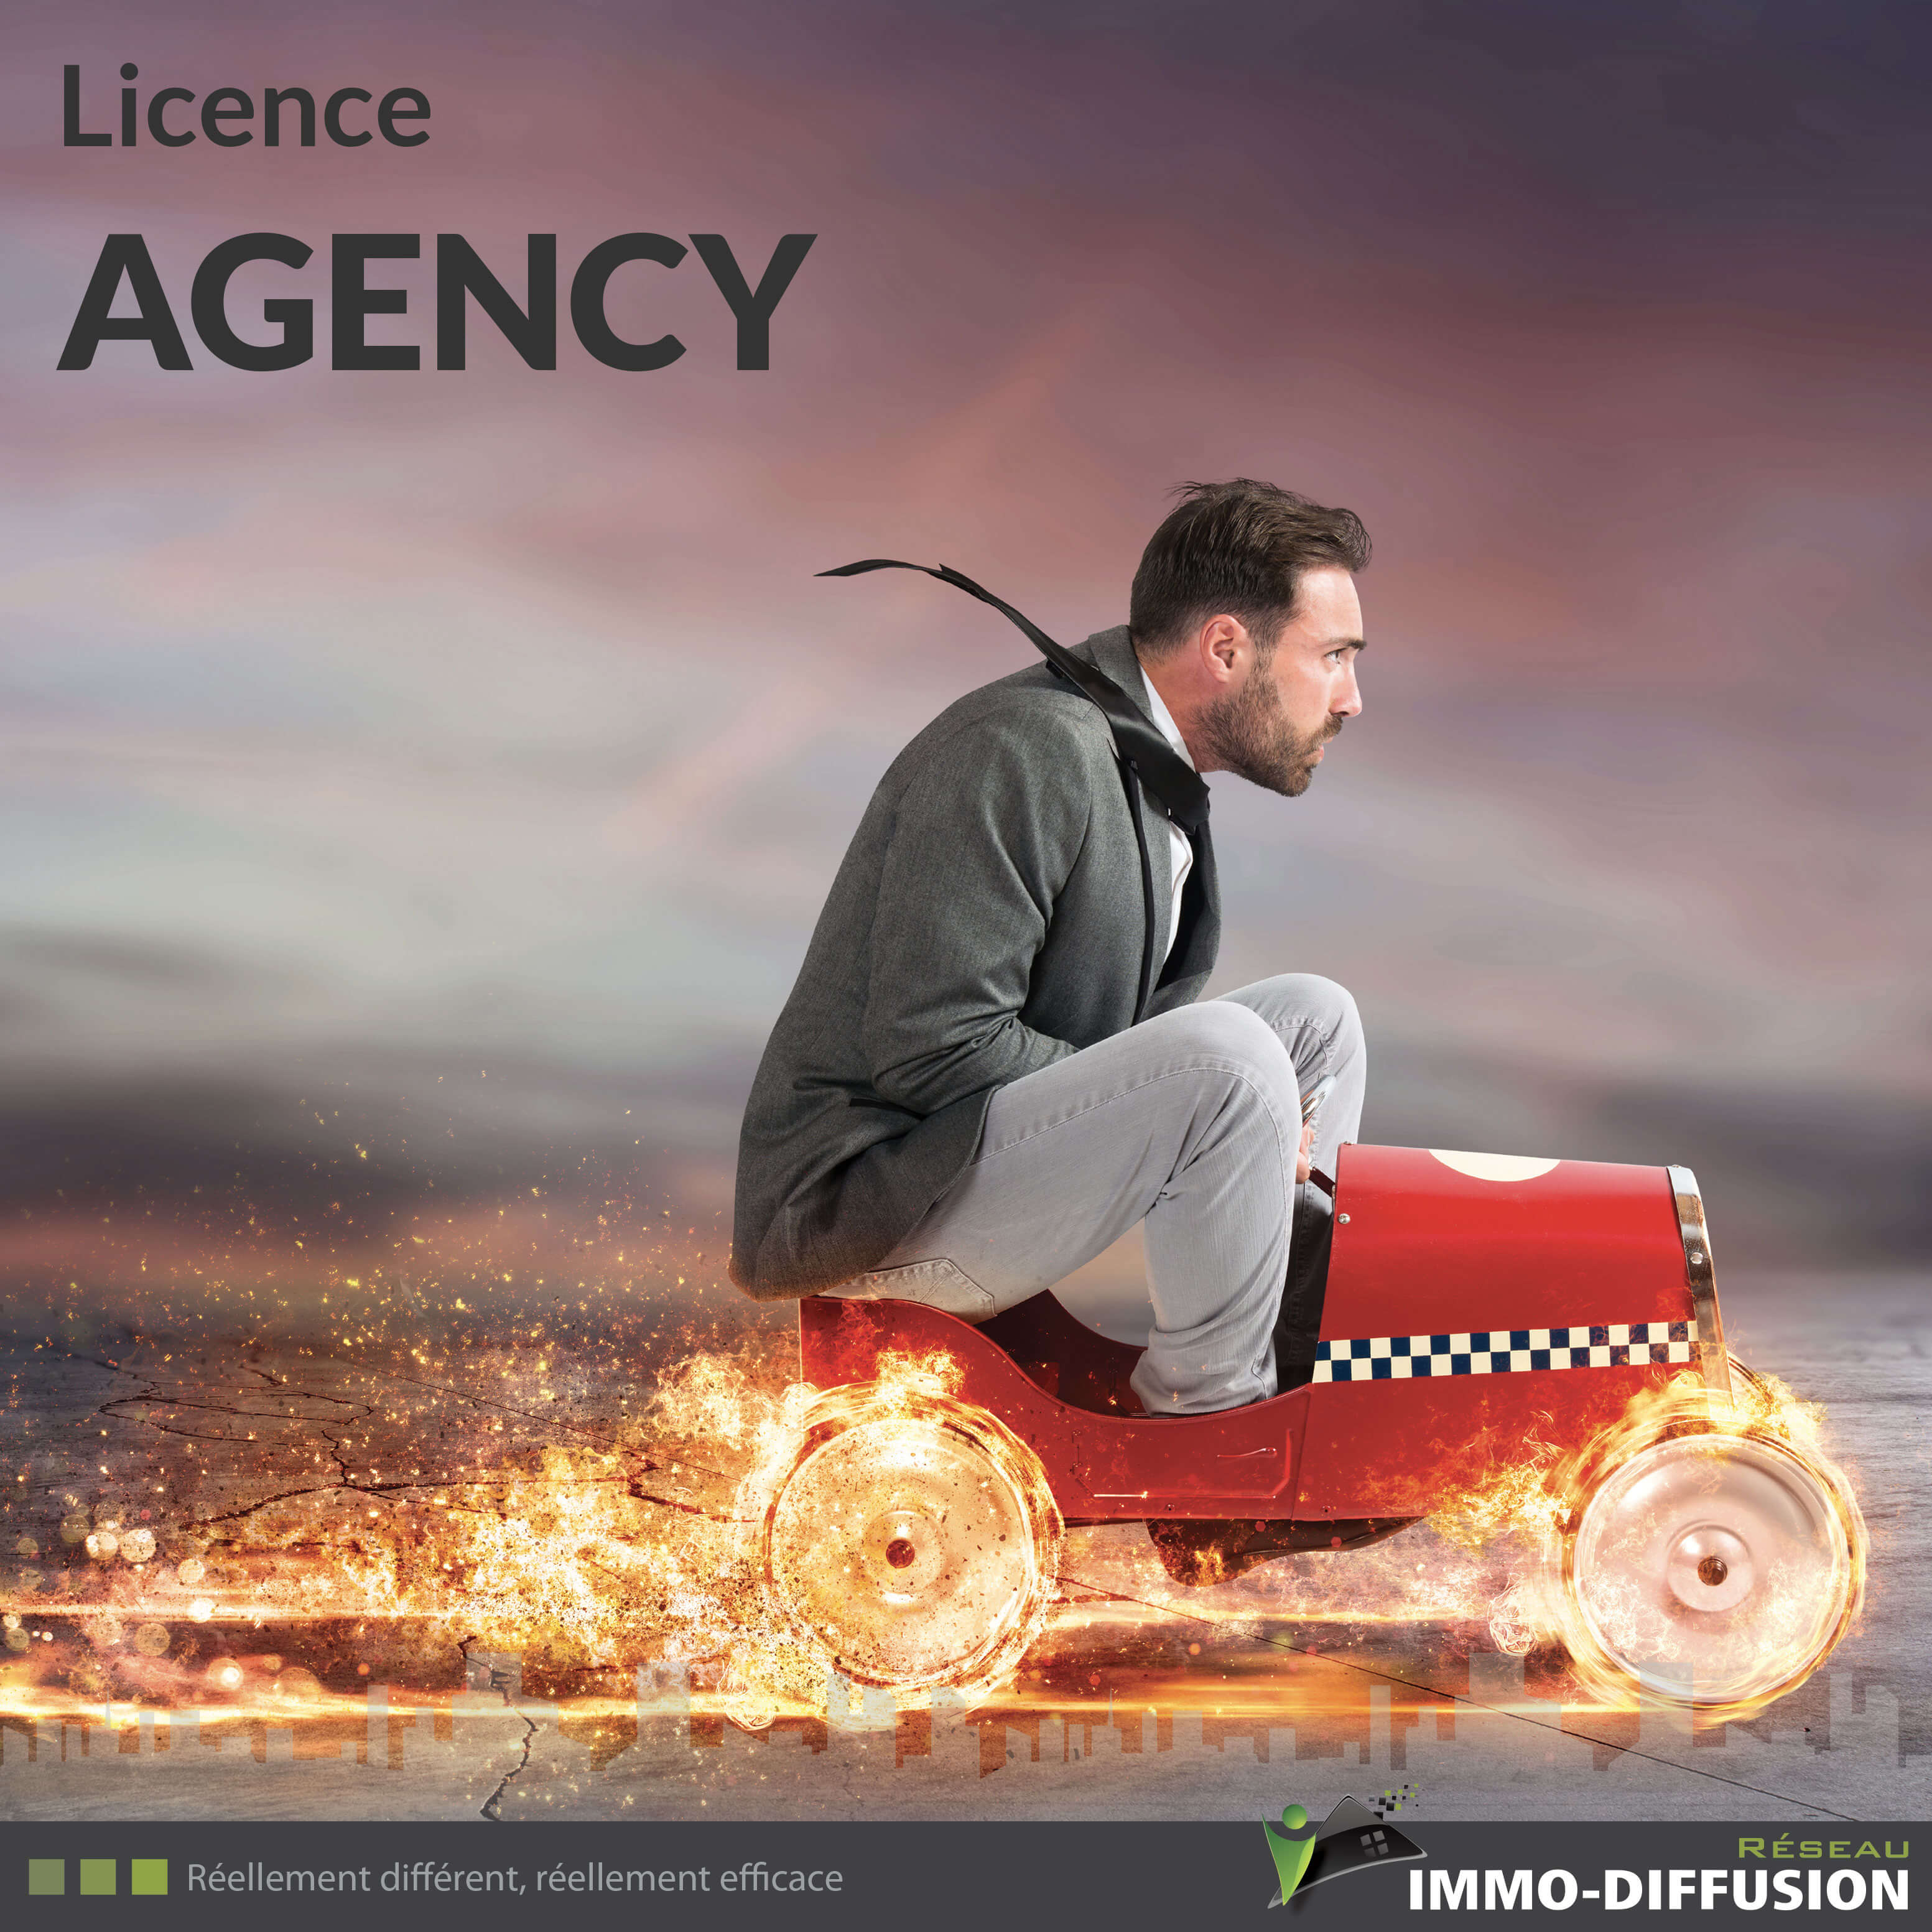 Licence AGENCY